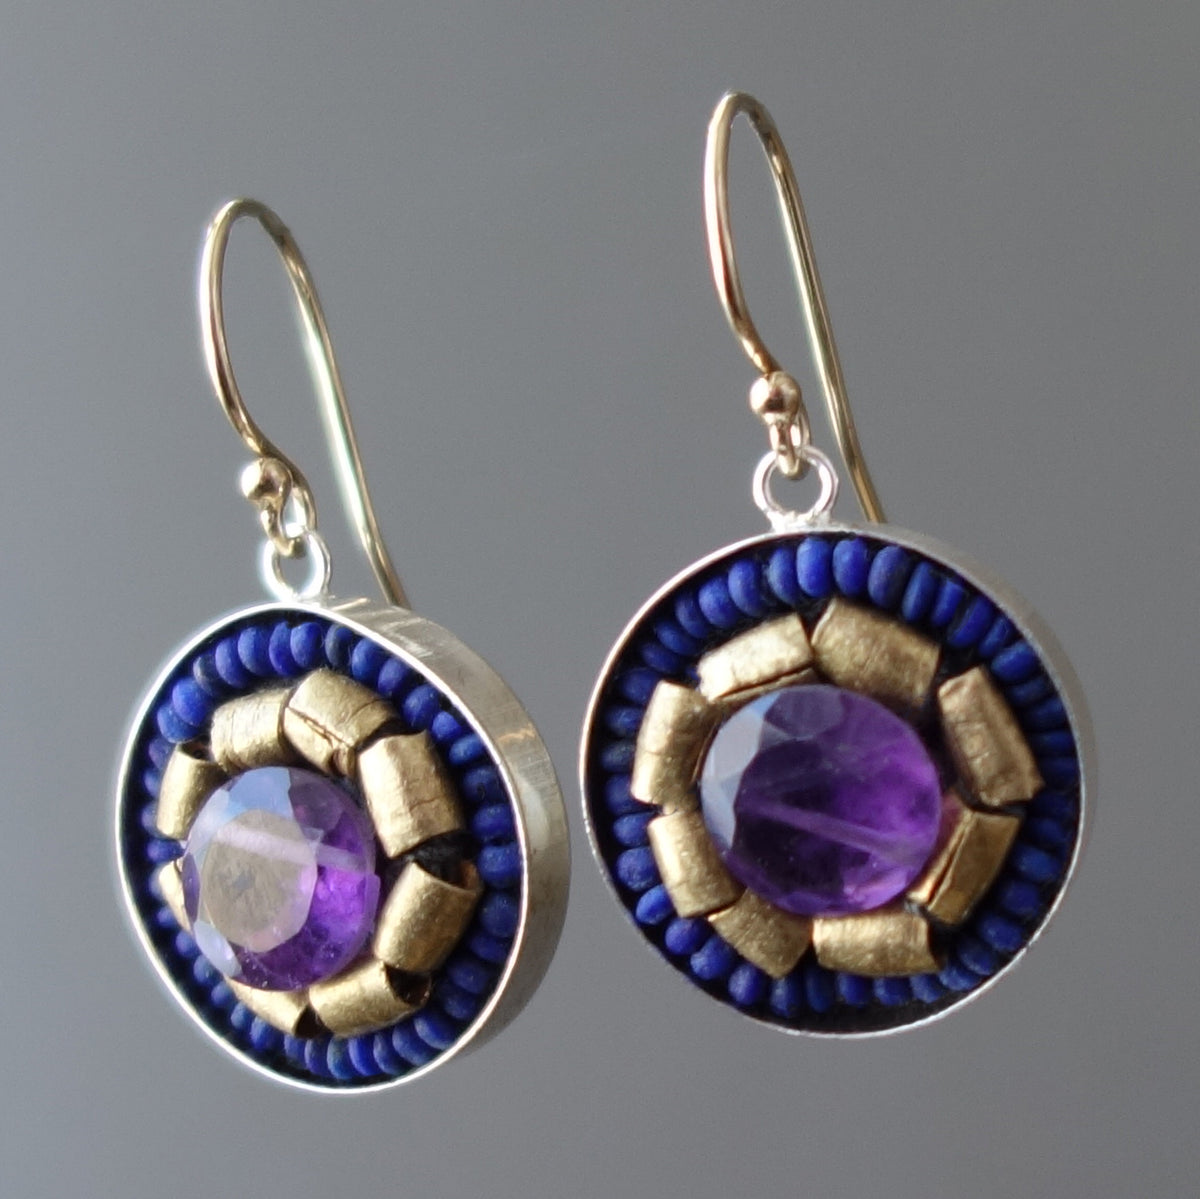 Amethyst, Gold, and Lapis Lazuli mosaic earring